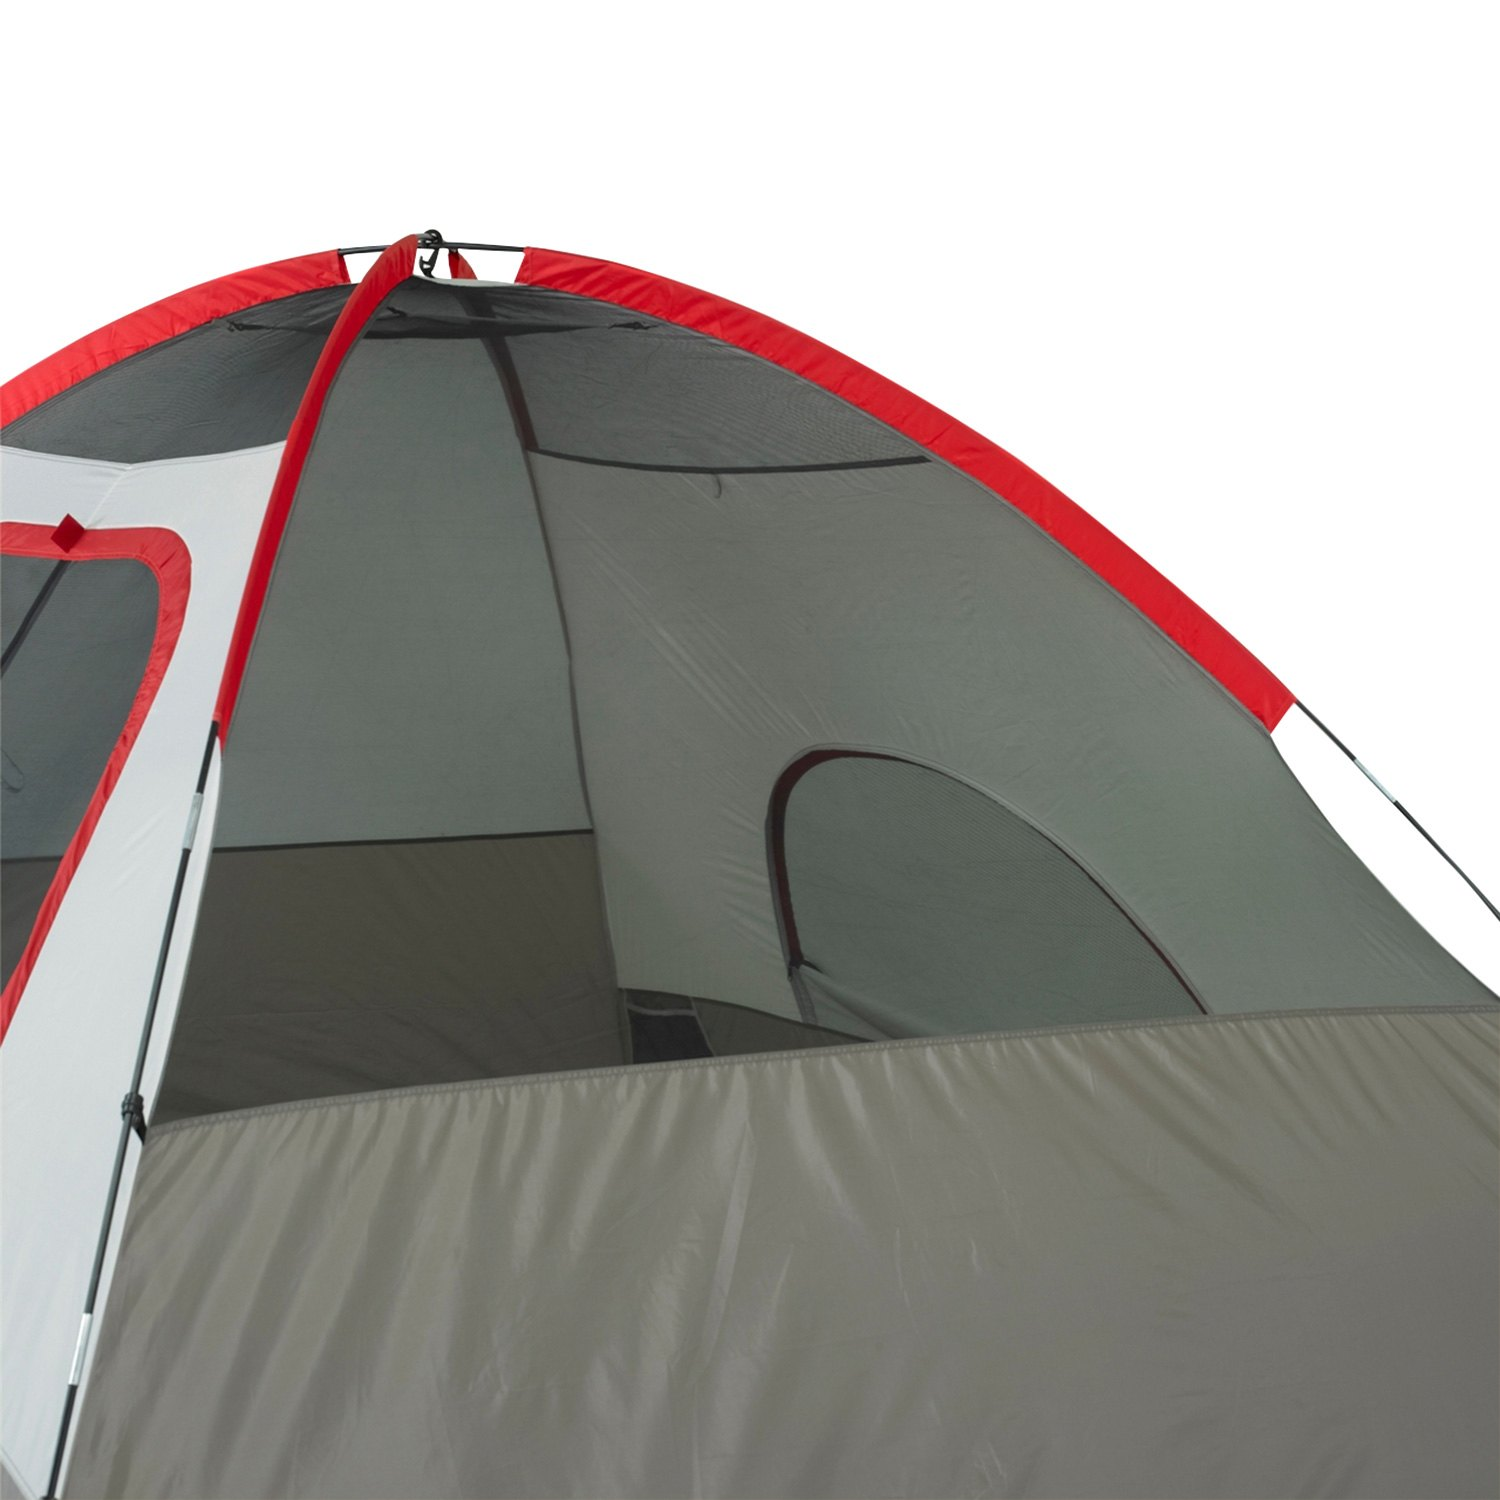 sc 1 st  CARiD.com & Wenzel® - Pine Ridge 5-Person Tent